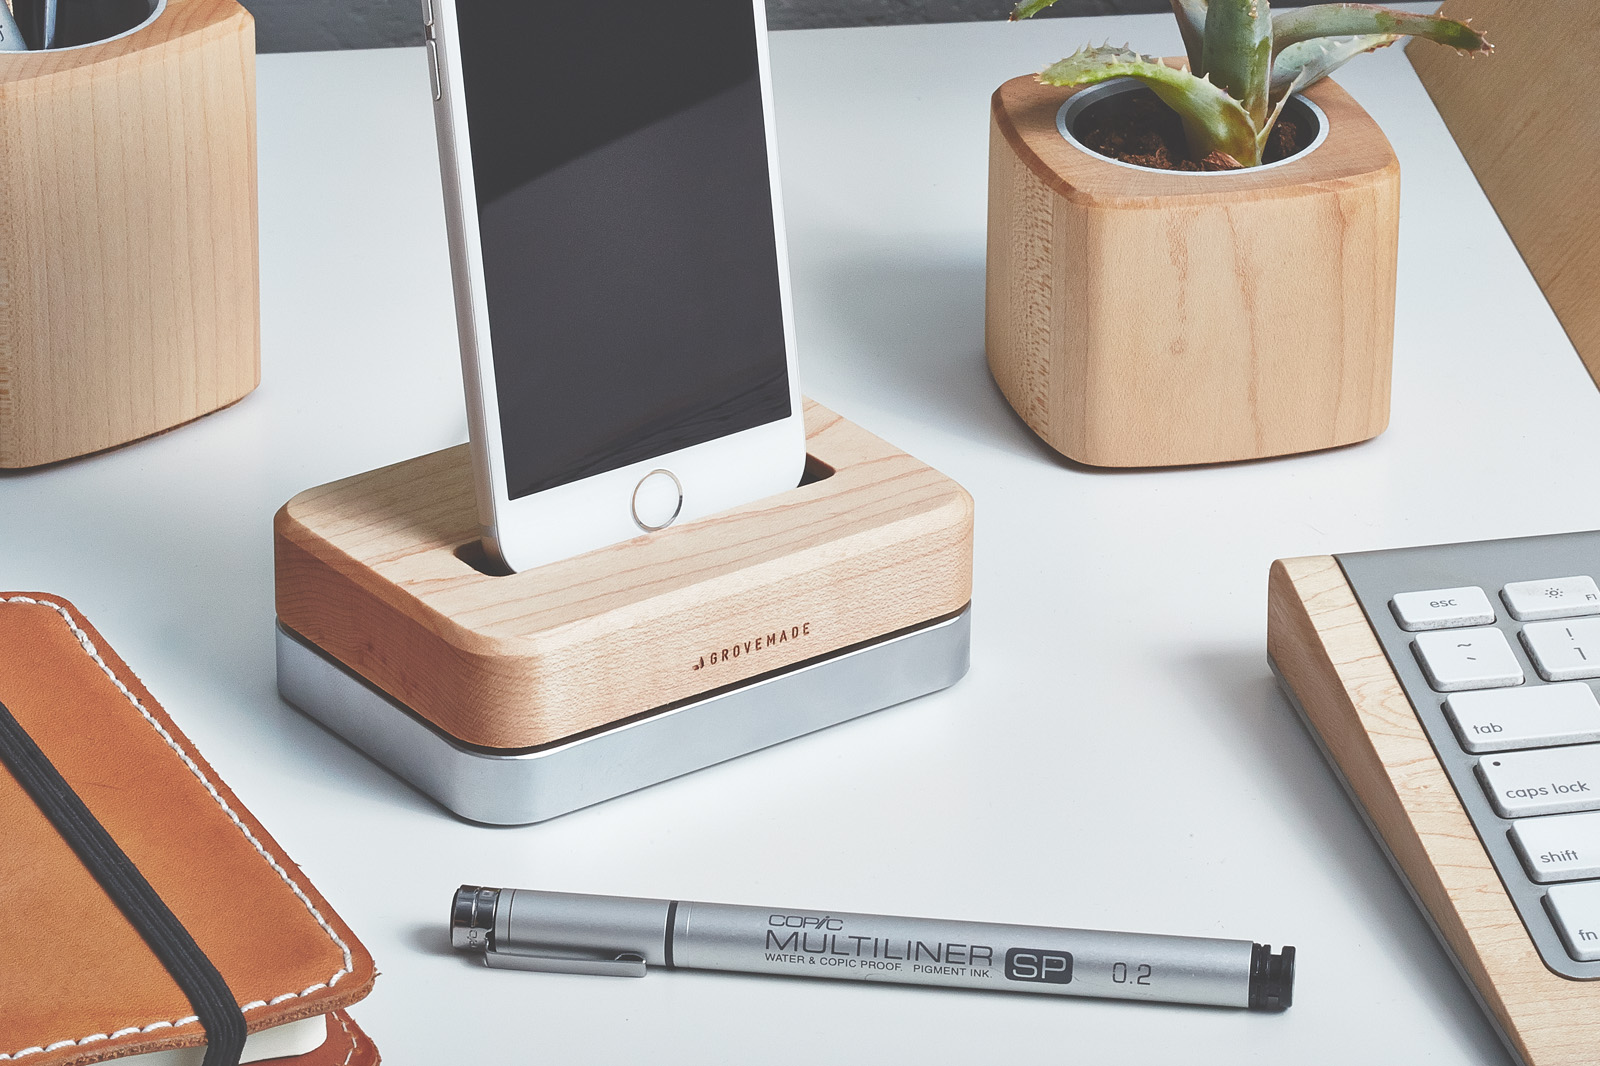 Stylish Charging Station 10 Phone Charging Docks Stations That Actually Look Good